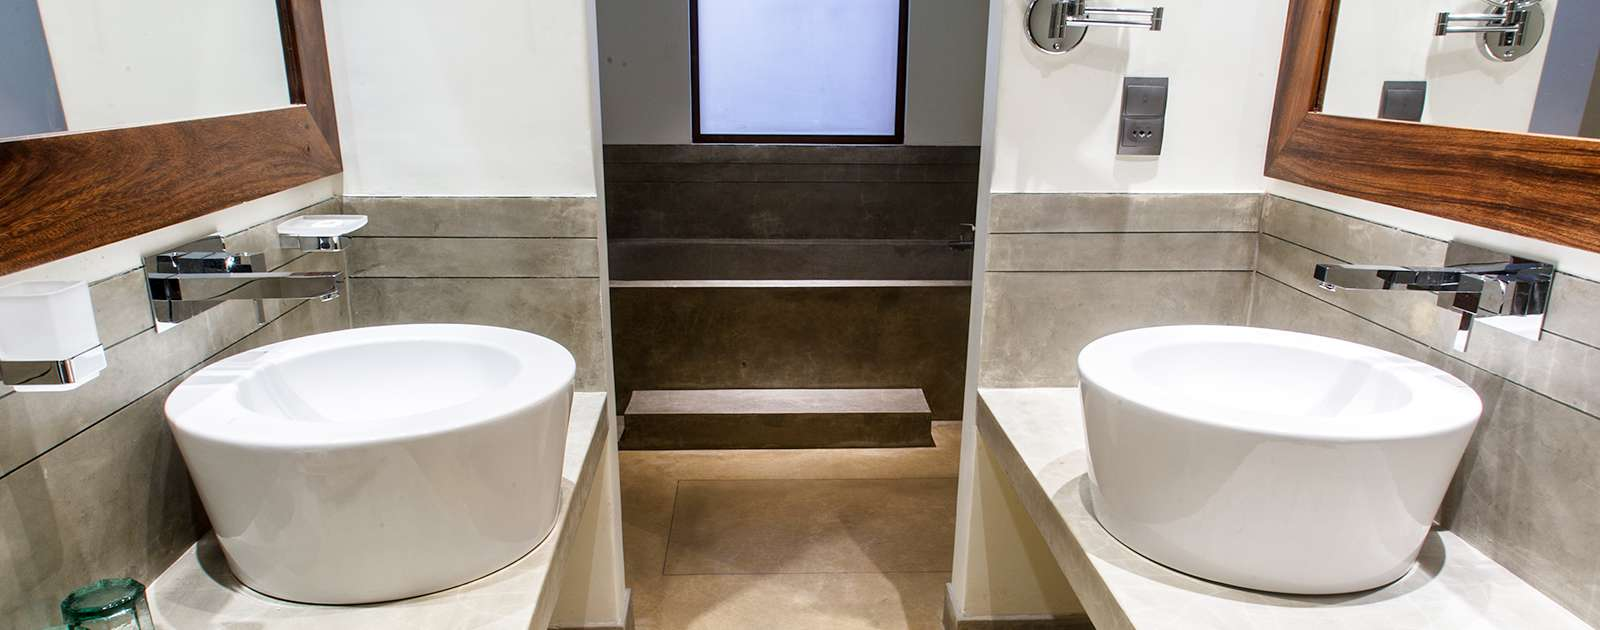 Bathrooms with luxury amenities in Colombo hotels